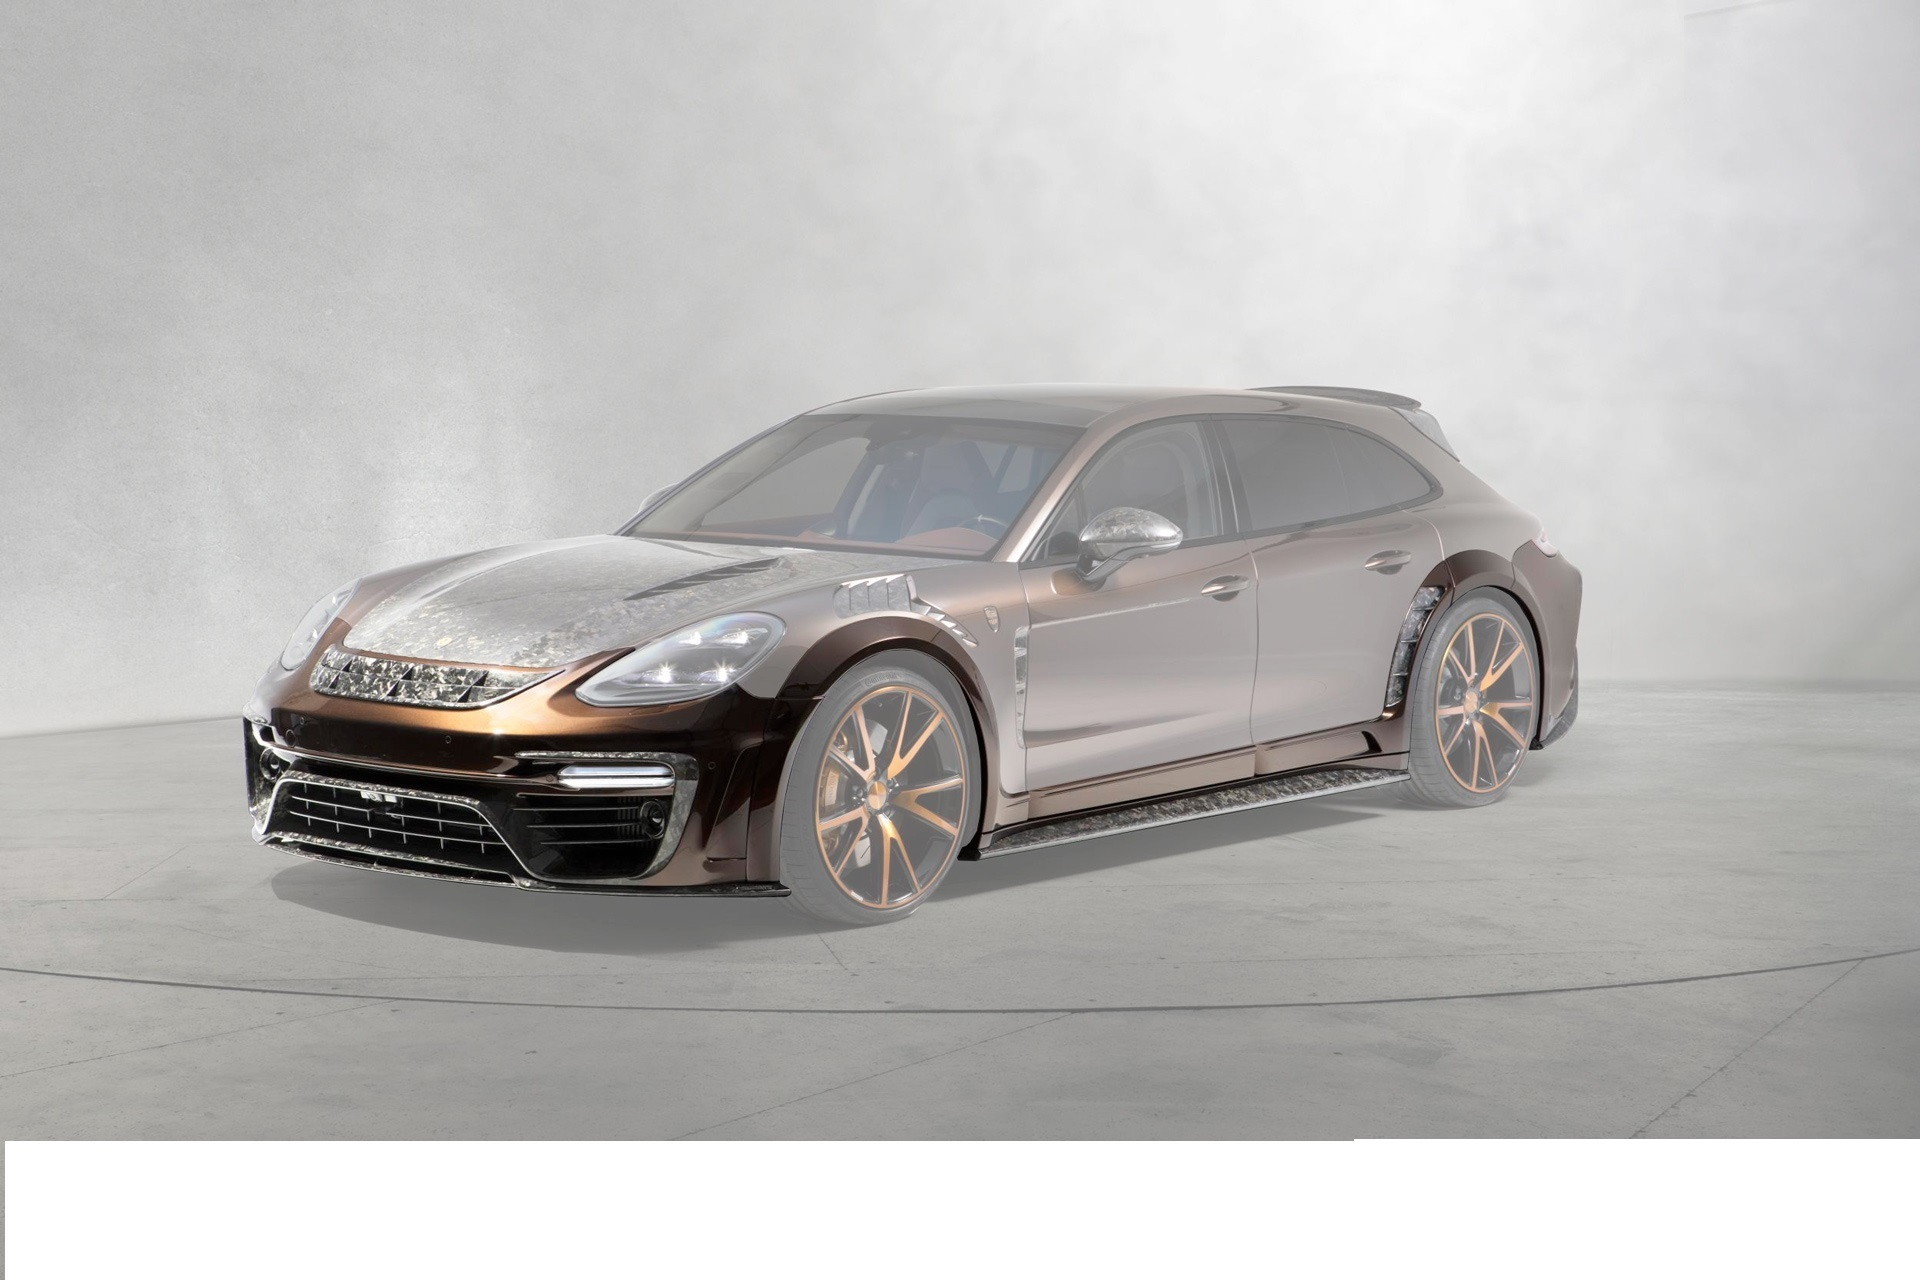 Hodoor Performance Carbon fiber wide body kit (without/with radar) Mansory Style for Porsche Panamera